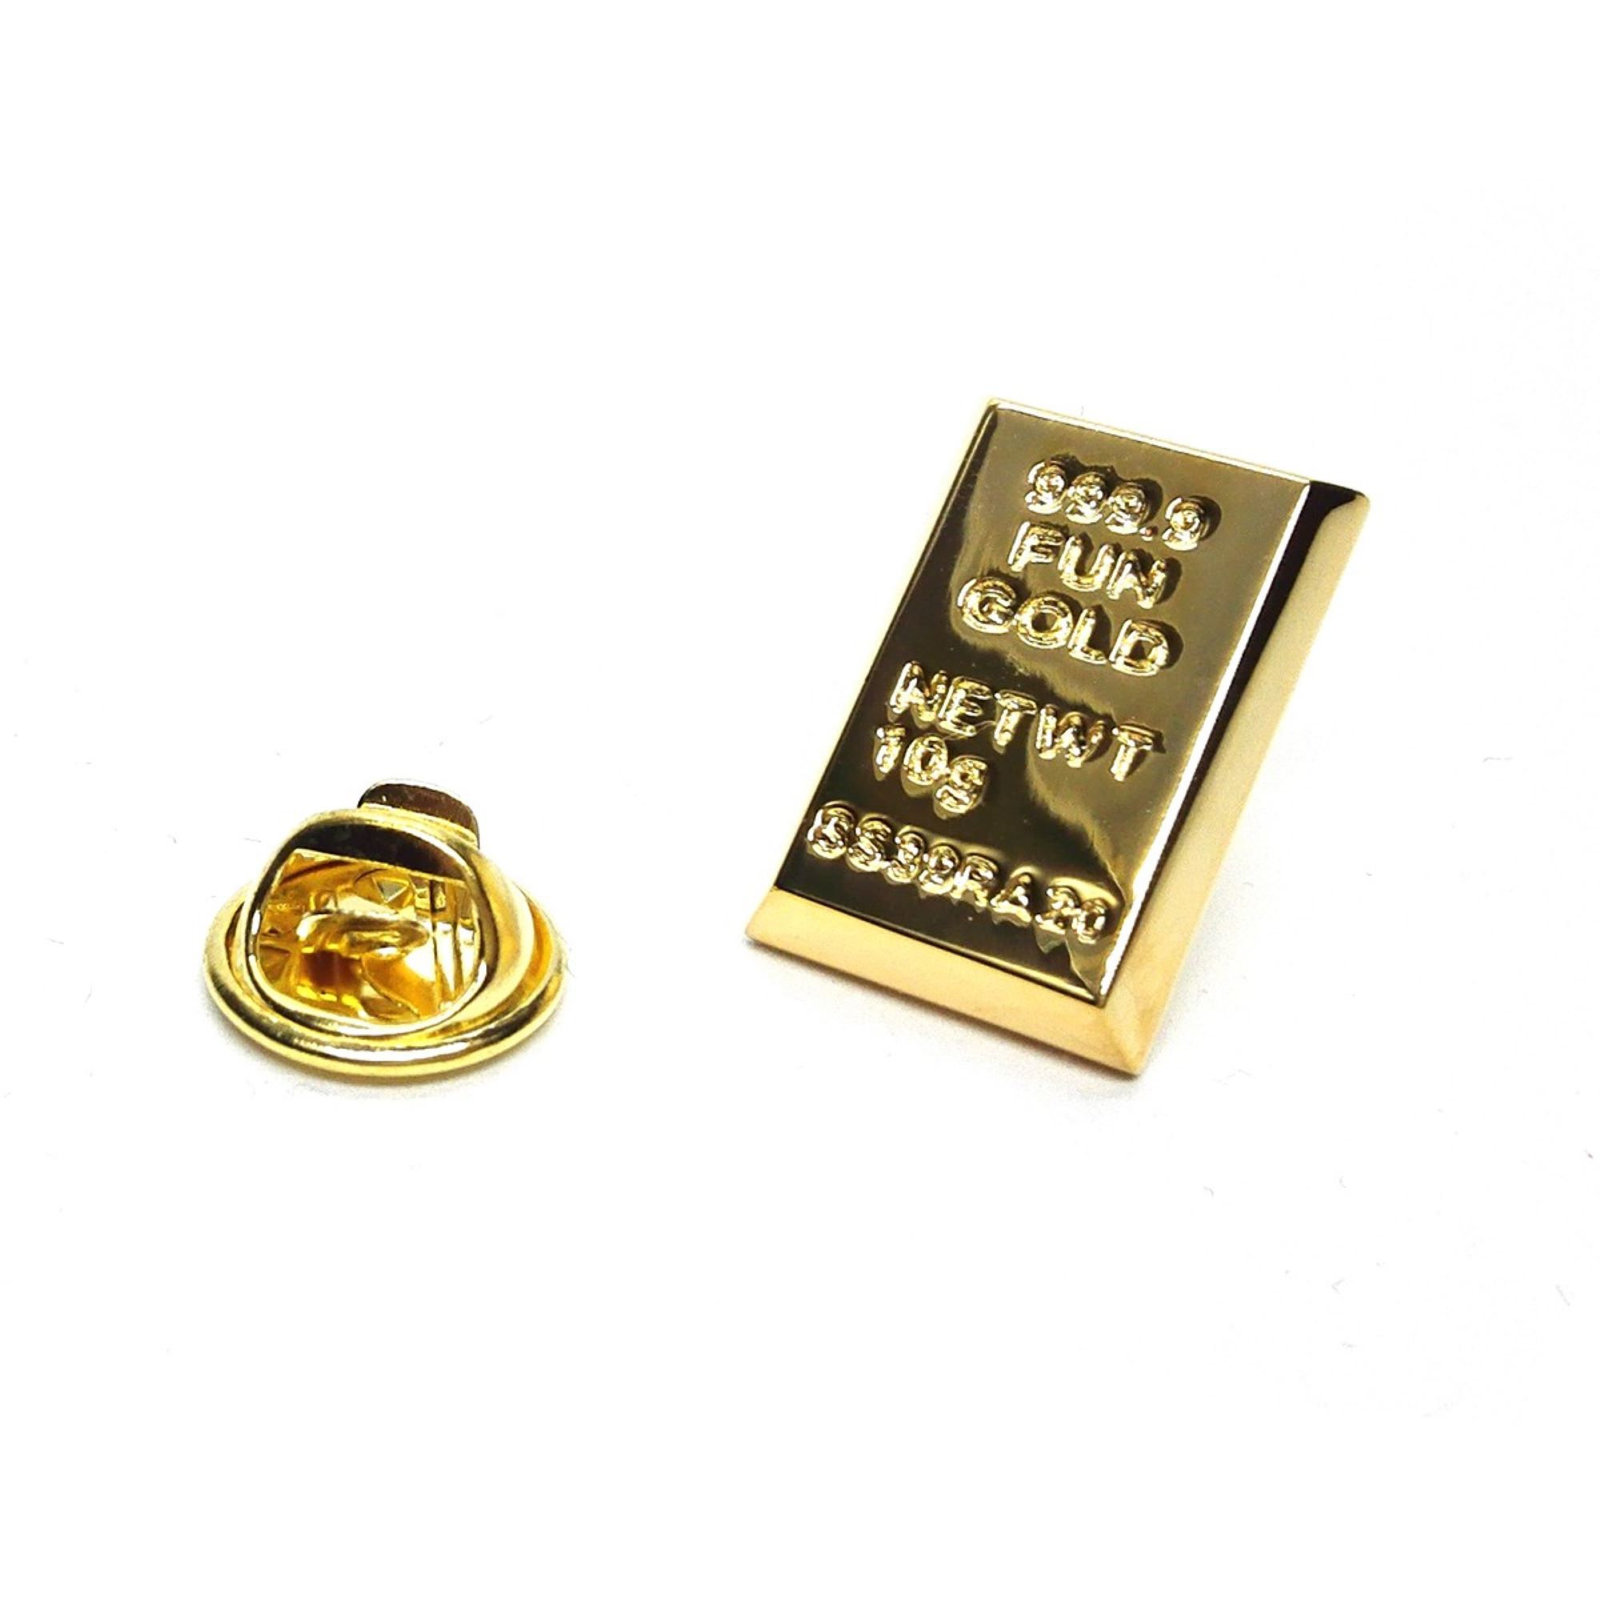 Gold Ingot very detailed pin badge, gold Lapel Pin Badge in gift box